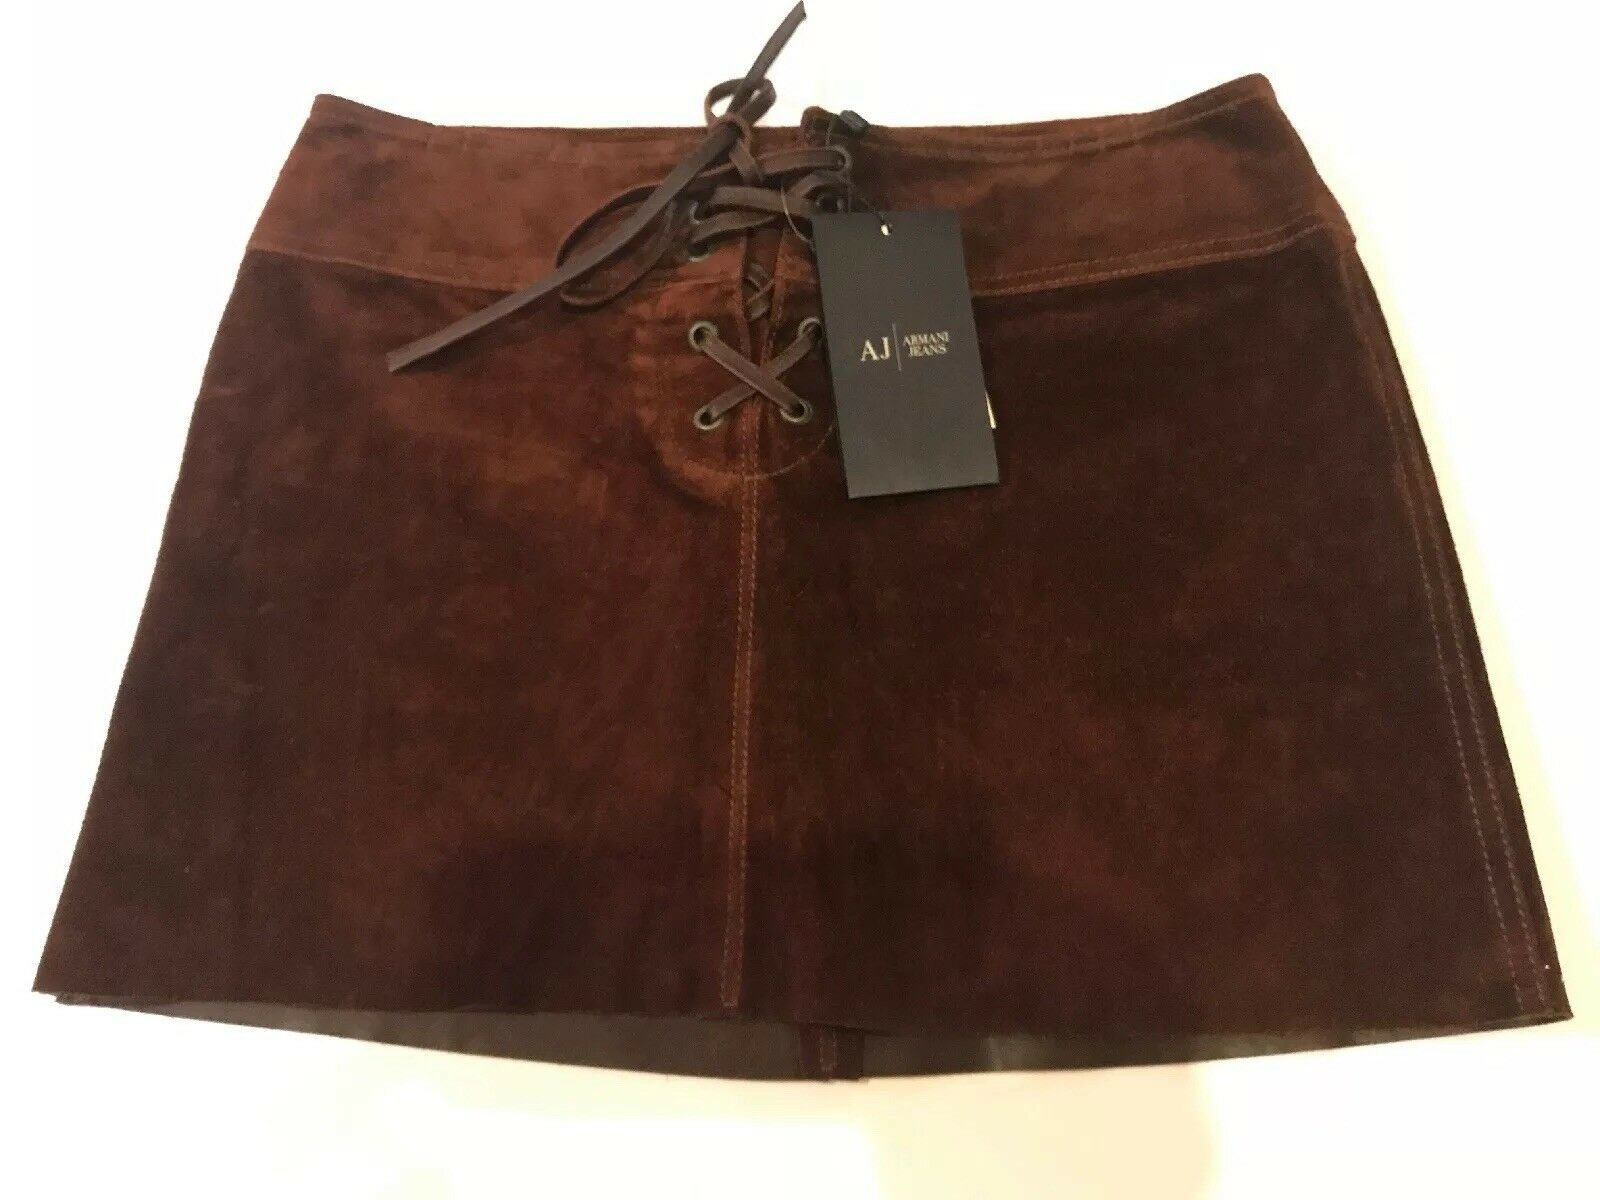 NWT Armani Jeans Sz 40 US 6 Women's Brown Suede 100% Leather Skirt Neiman Marcus